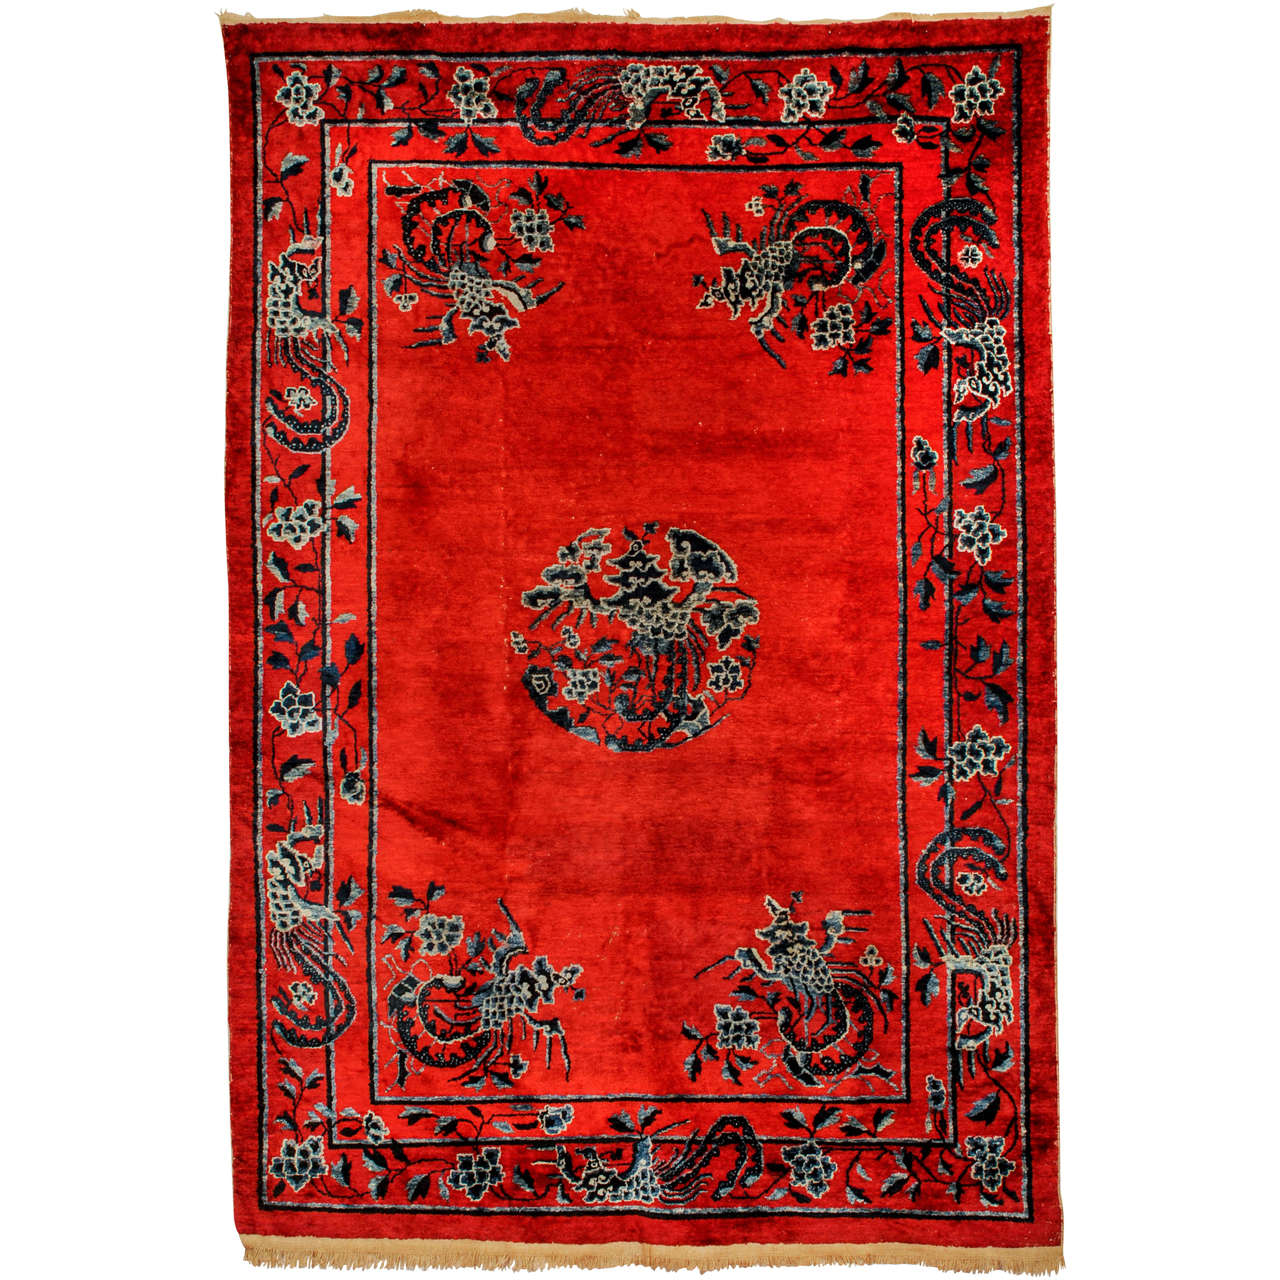 Imperial Chinese Red Silk Rug with